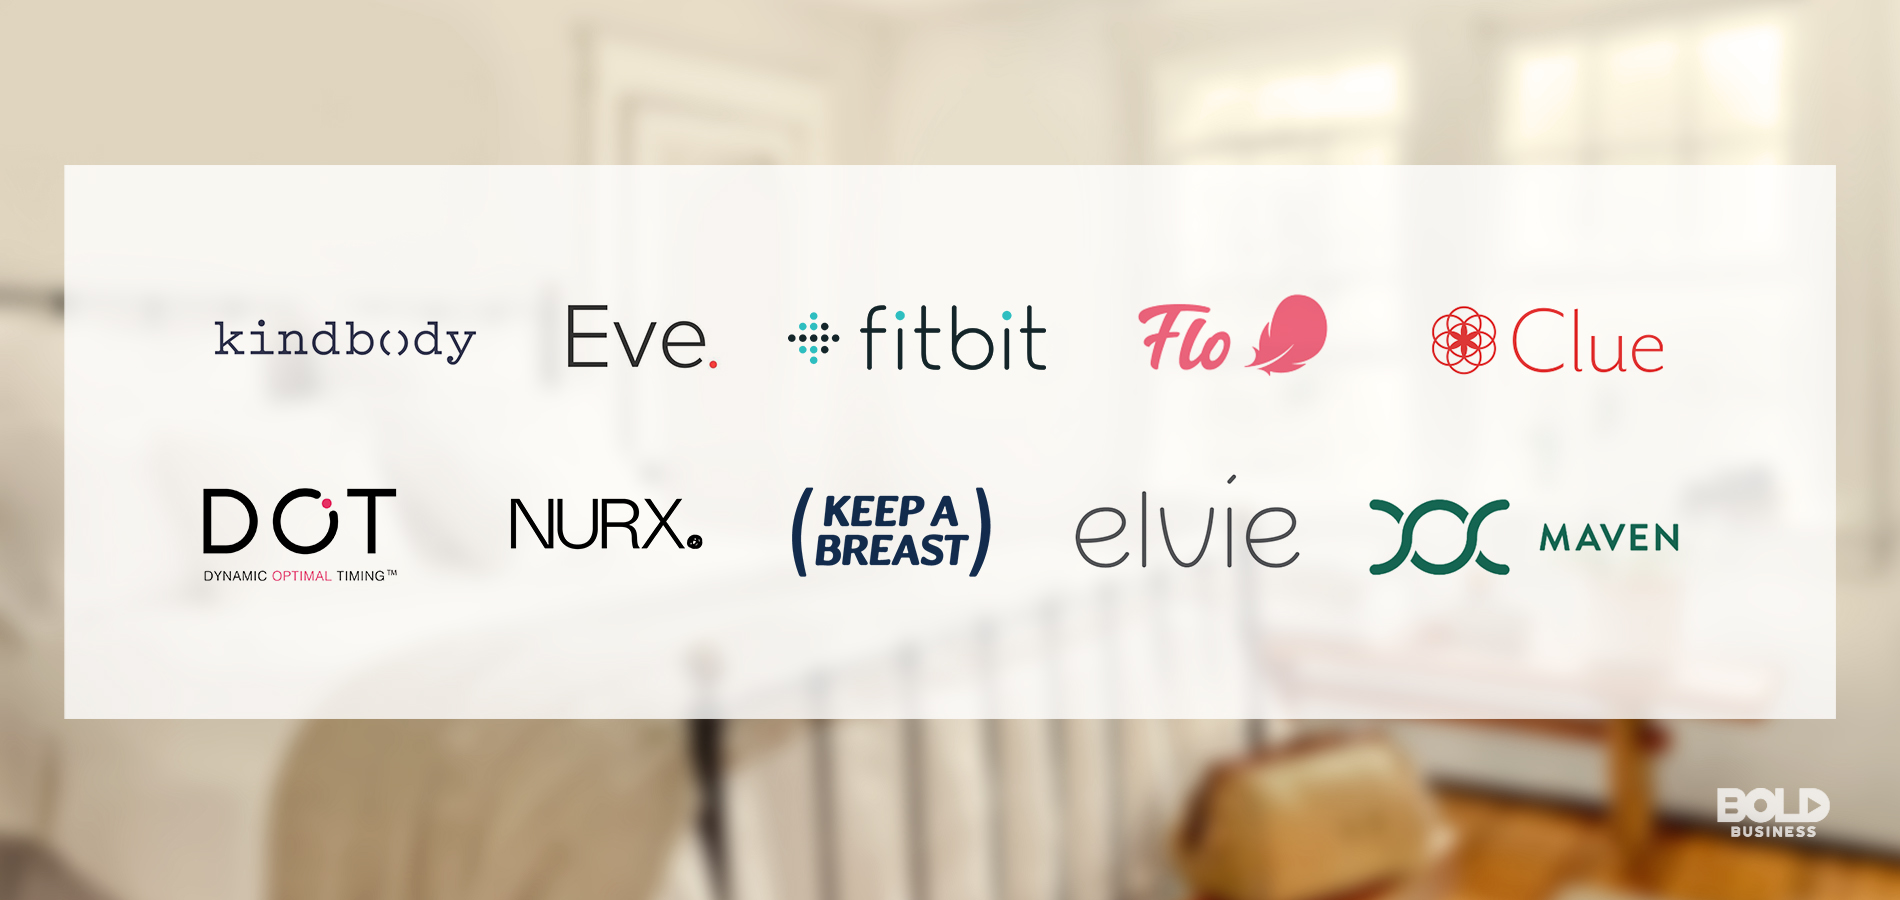 a photo containing the logos of companies or brands that address female health issues or have produced apps for female health